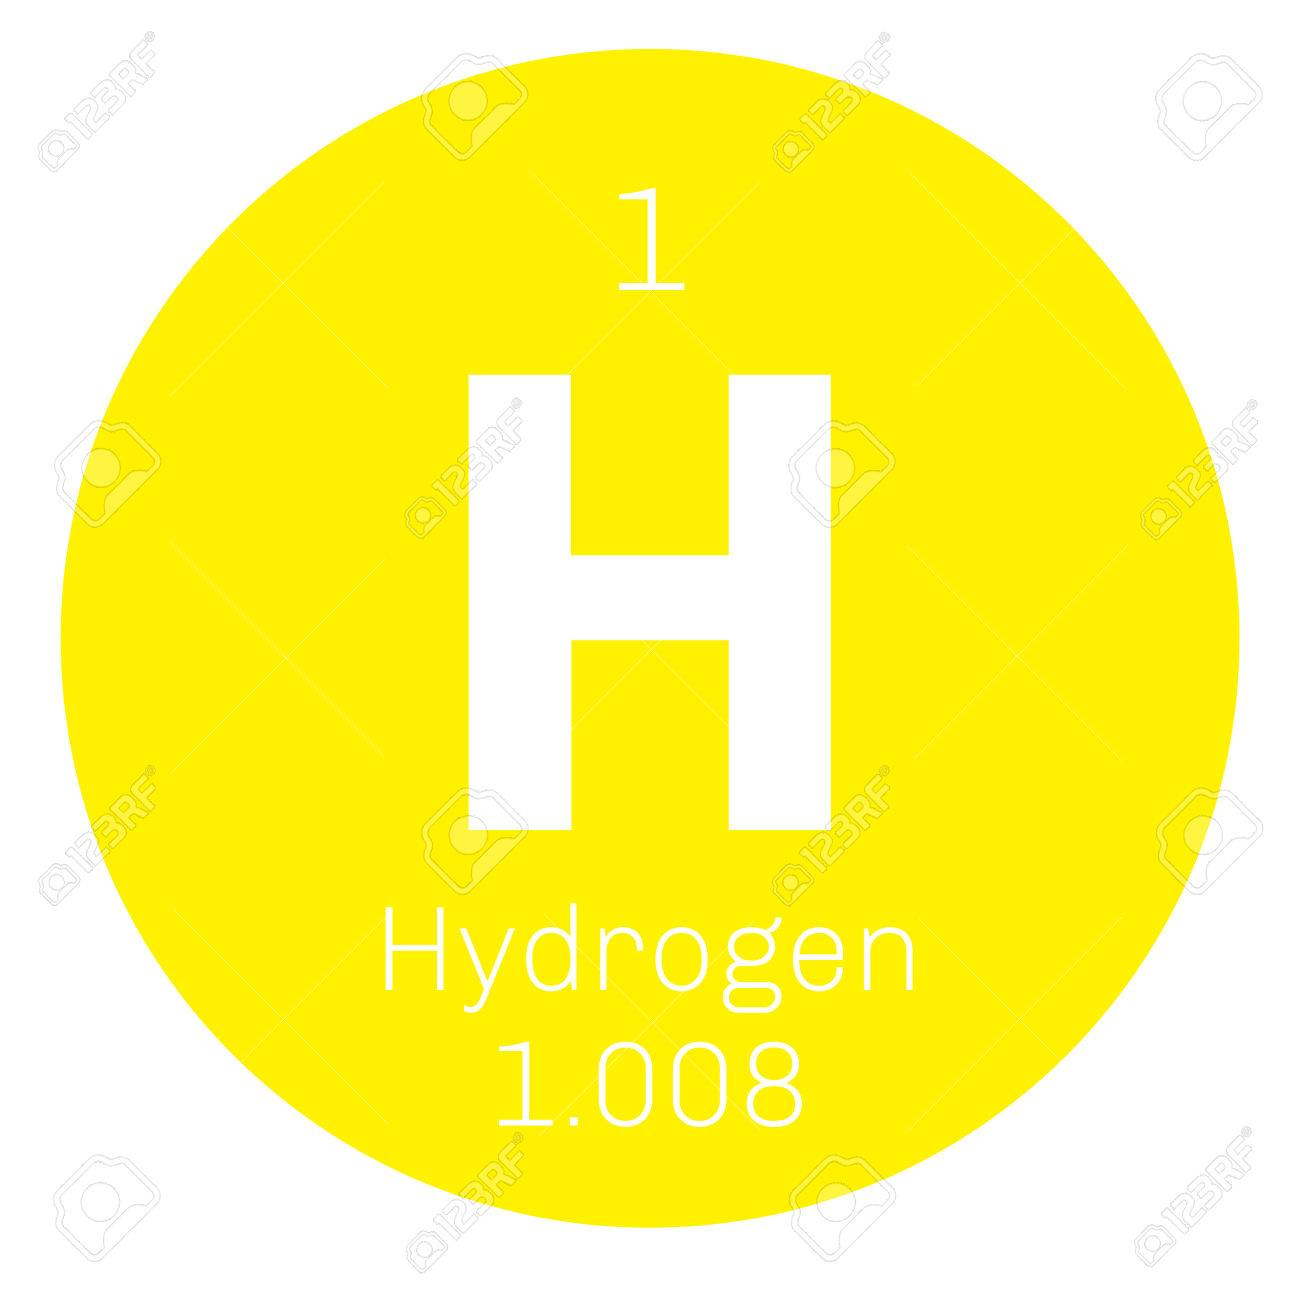 Hydrogen chemical element the lightest element on the periodic hydrogen chemical element the lightest element on the periodic table colored icon with atomic urtaz Gallery